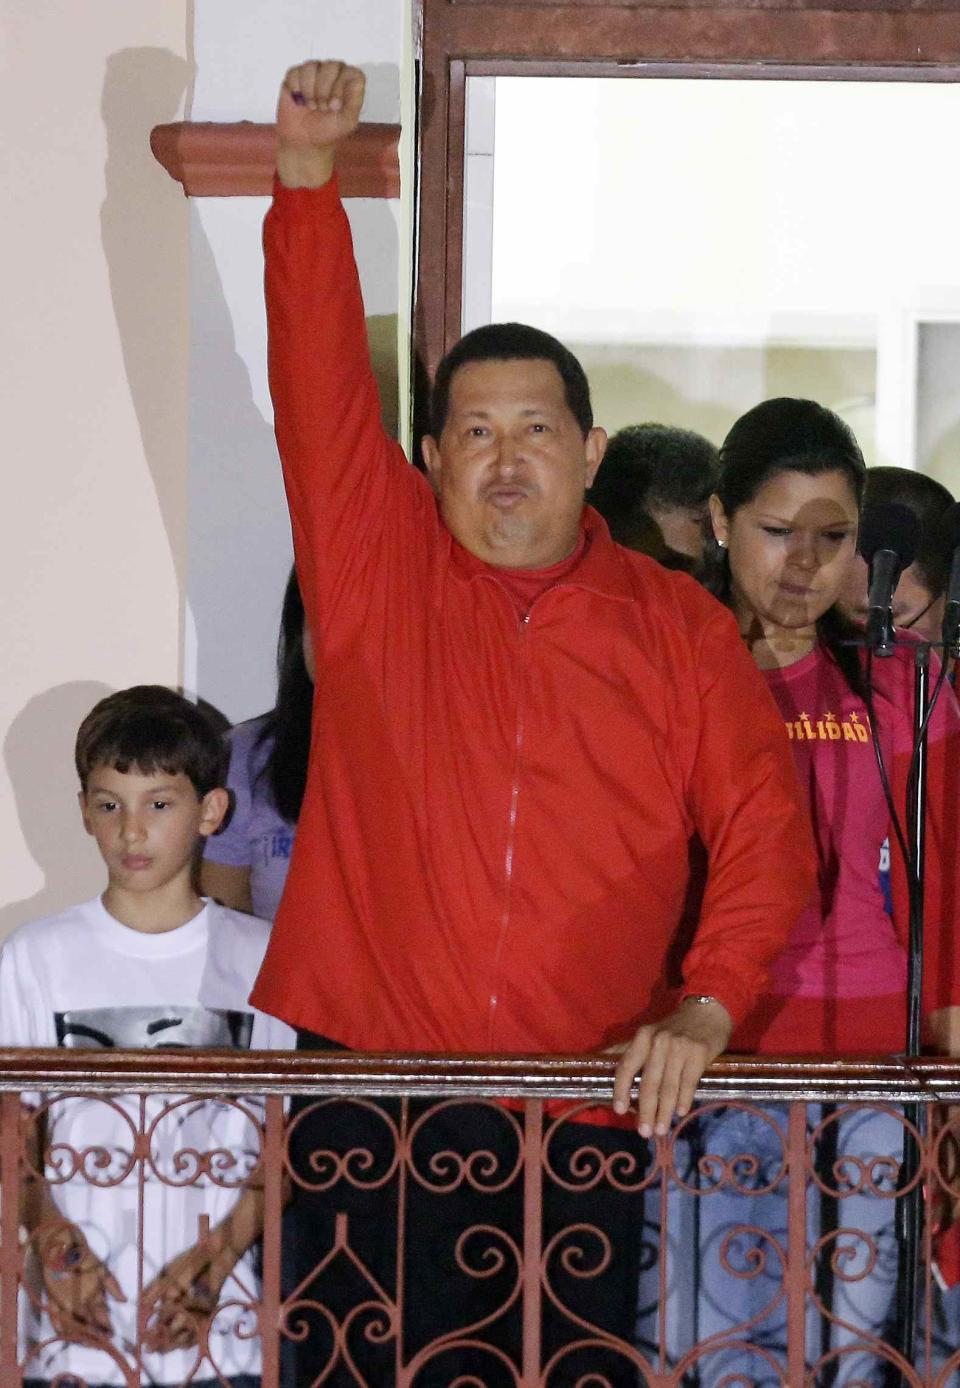 Venezuela's President Hugo Chavez greets his supporters at the Miraflores presidential palace balcony in Caracas, Venezuela, Sunday, Oct. 7, 2012.  Chavez won re-election and a new endorsement of his socialist project Sunday, surviving his closest race yet after a bitter campaign against opposition candidate Henrique Capriles.(AP Photo/Fernando Llano)